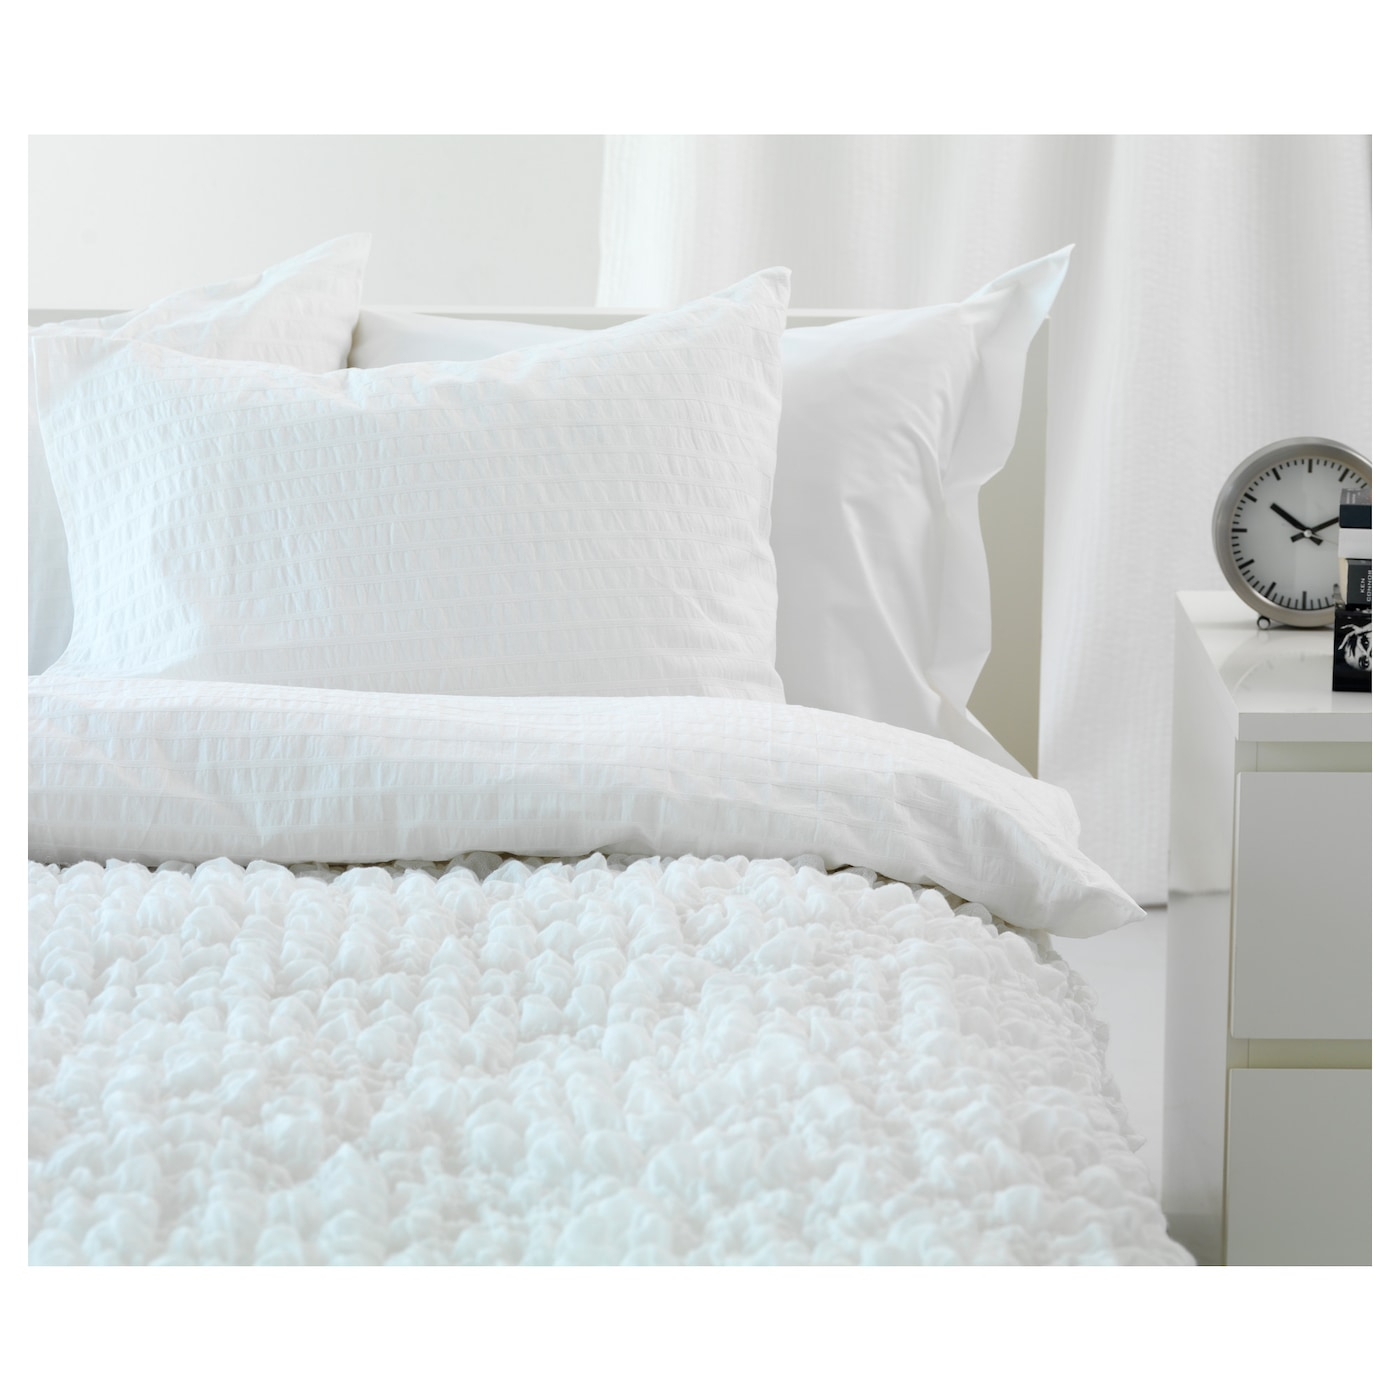 IKEA OFELIA blanket Fits beds up to 180 cm wide since the blanket is stretchable.